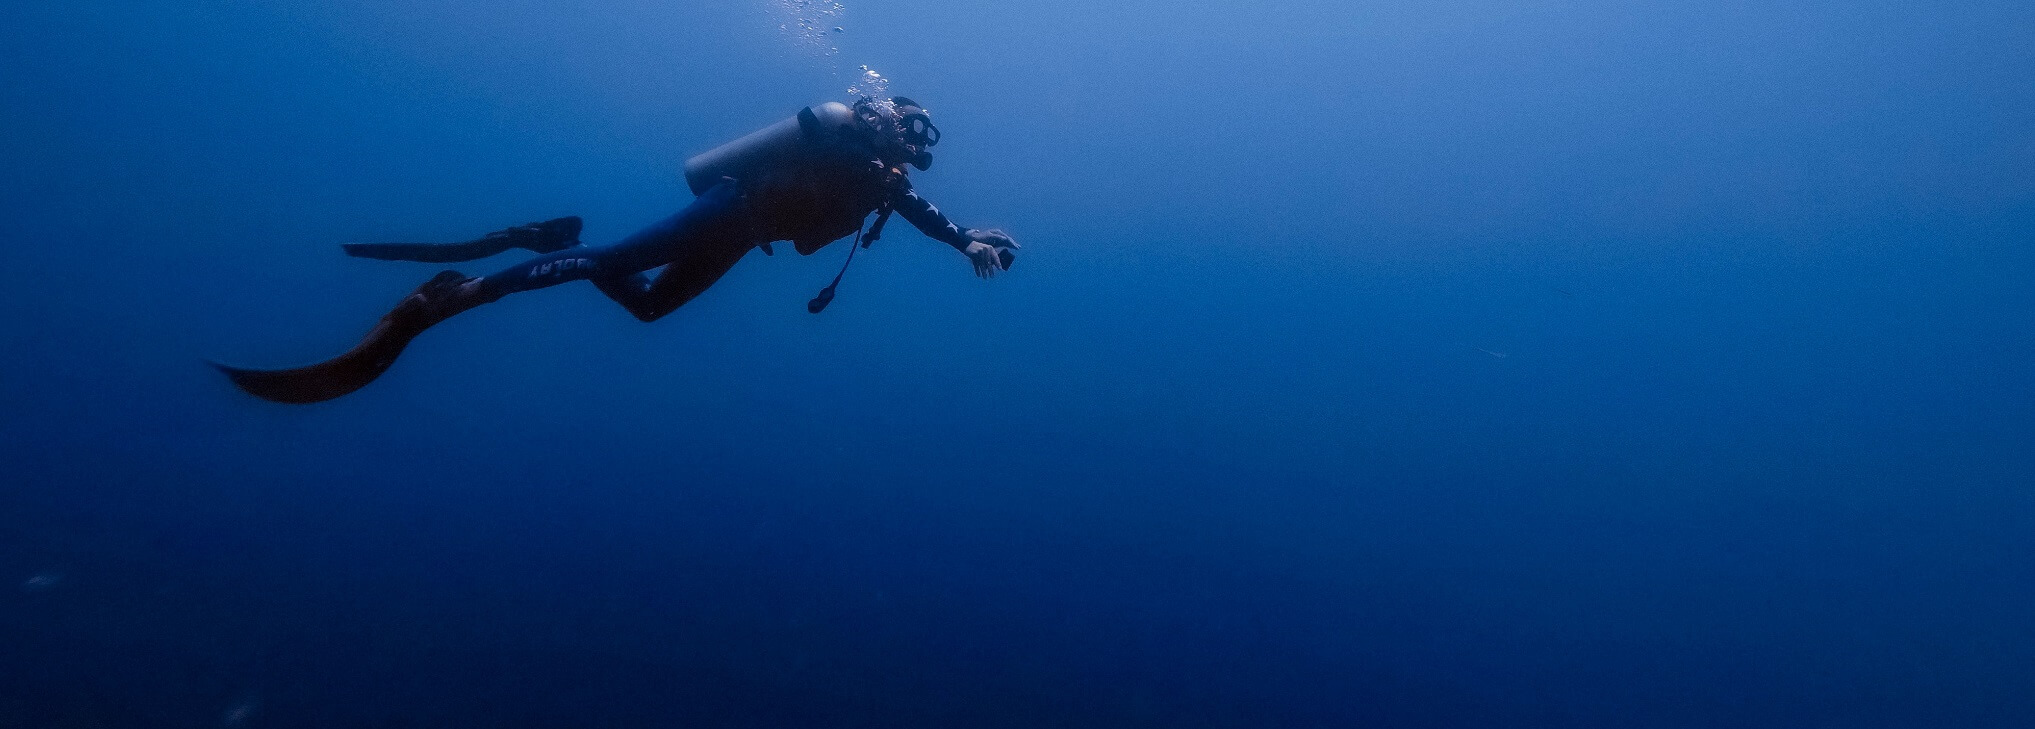 We believe in Diving to make a Difference and that's why we Dive Differently